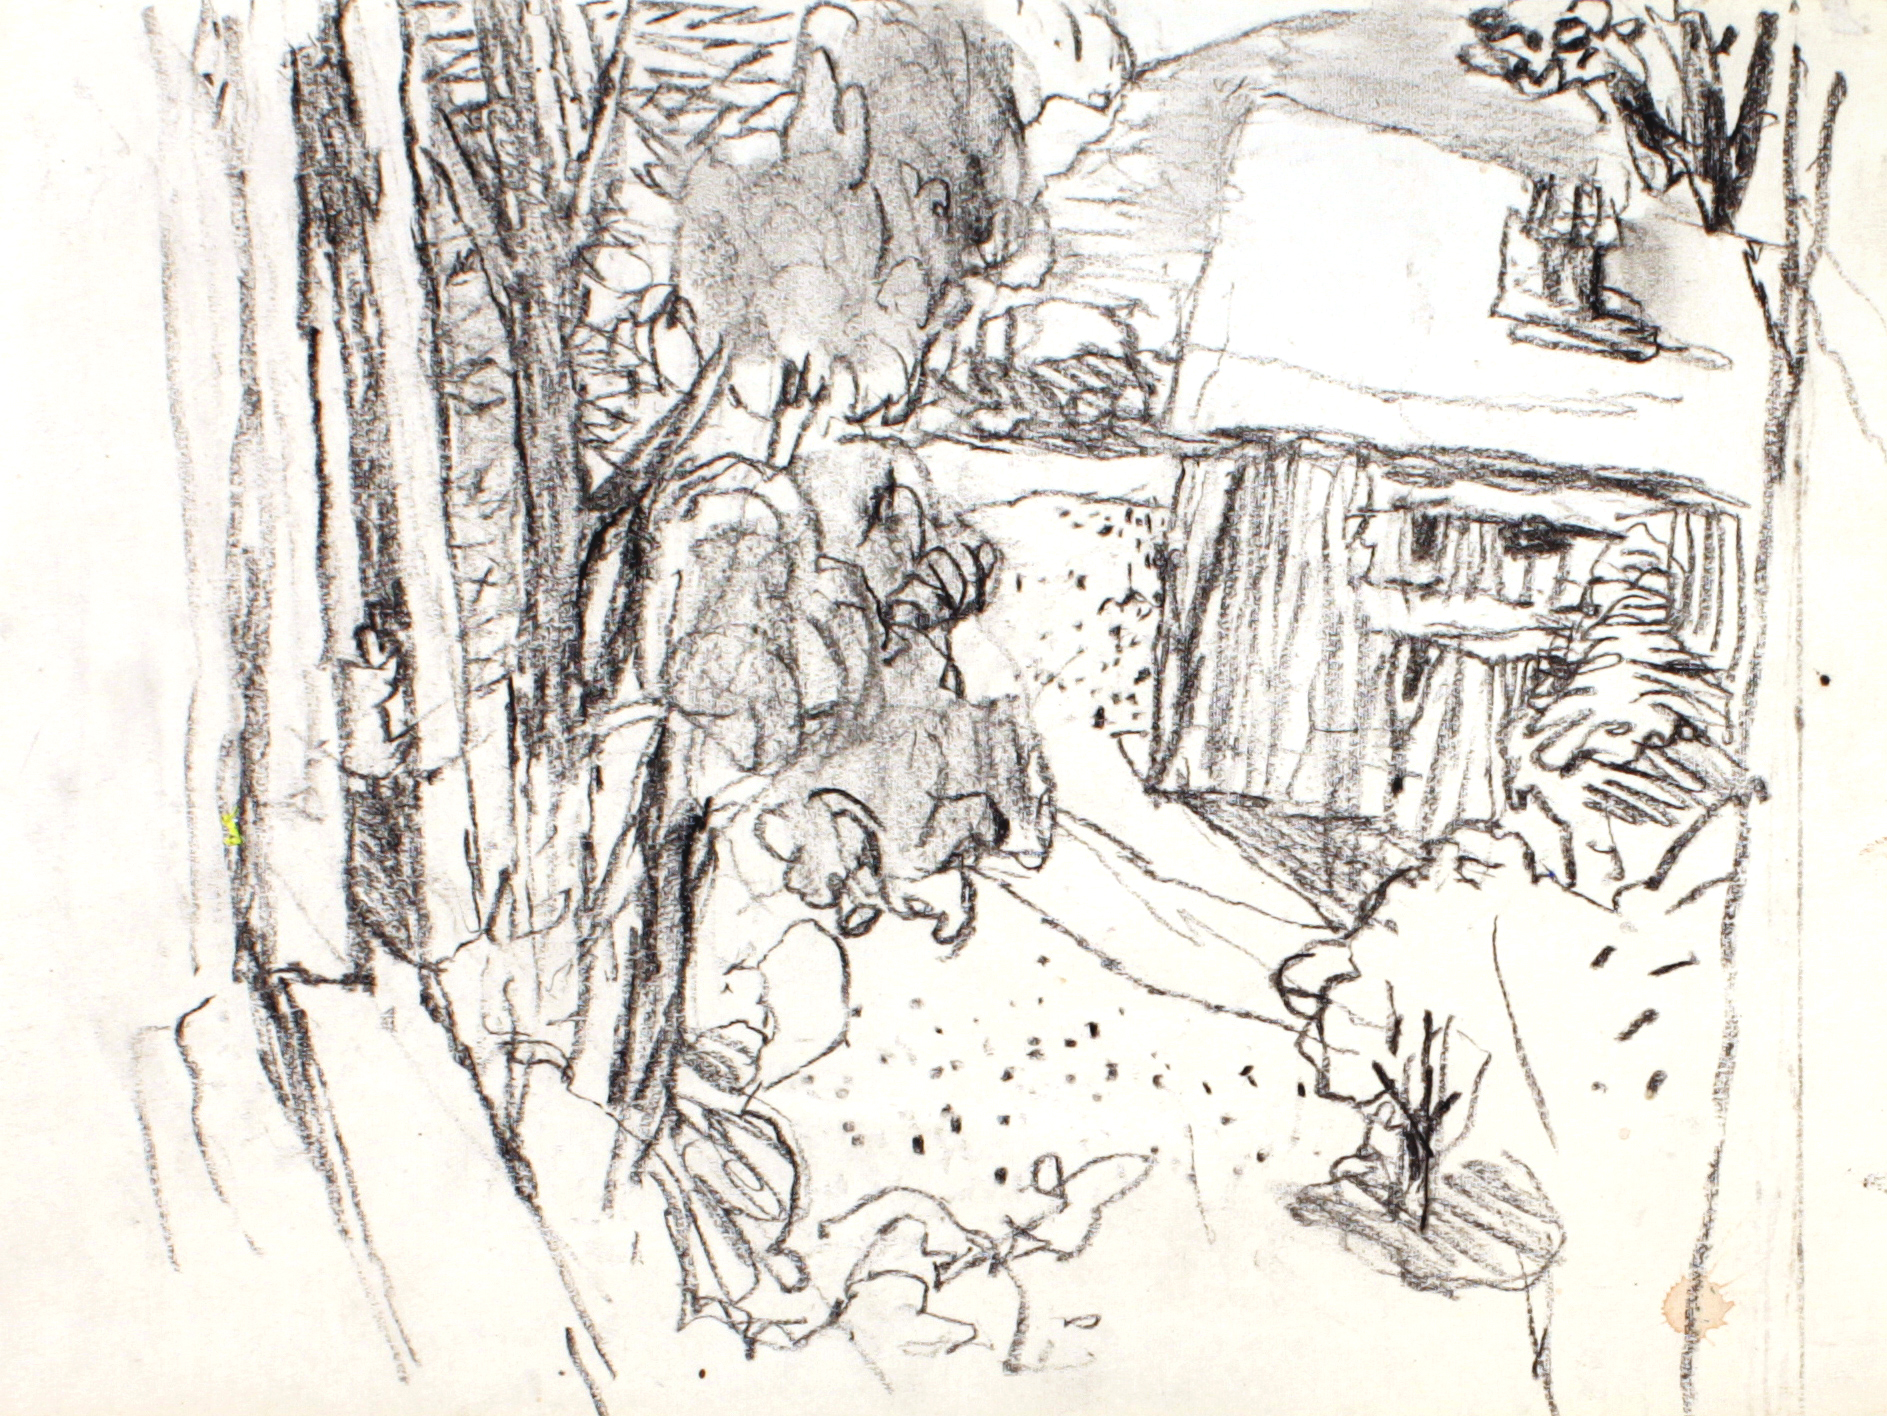 1991_Maine_charcoal_on_Paper_9x12in_WPF057.jpg